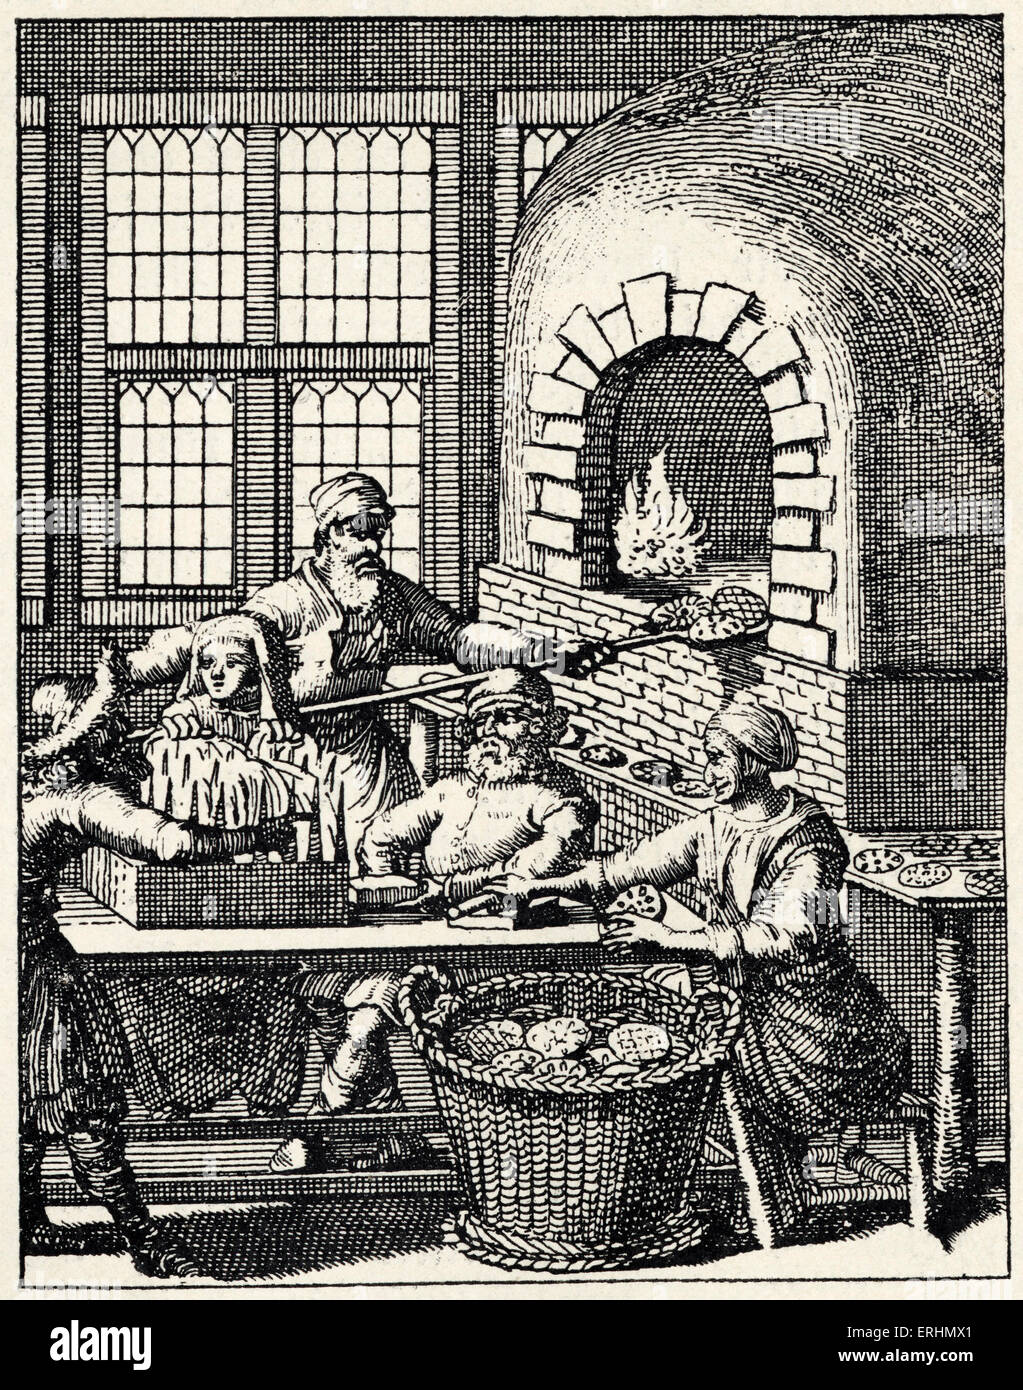 Baking the unleavened bread / matzot for festival of Passover From book published in Utrecht, 1657 - Stock Image